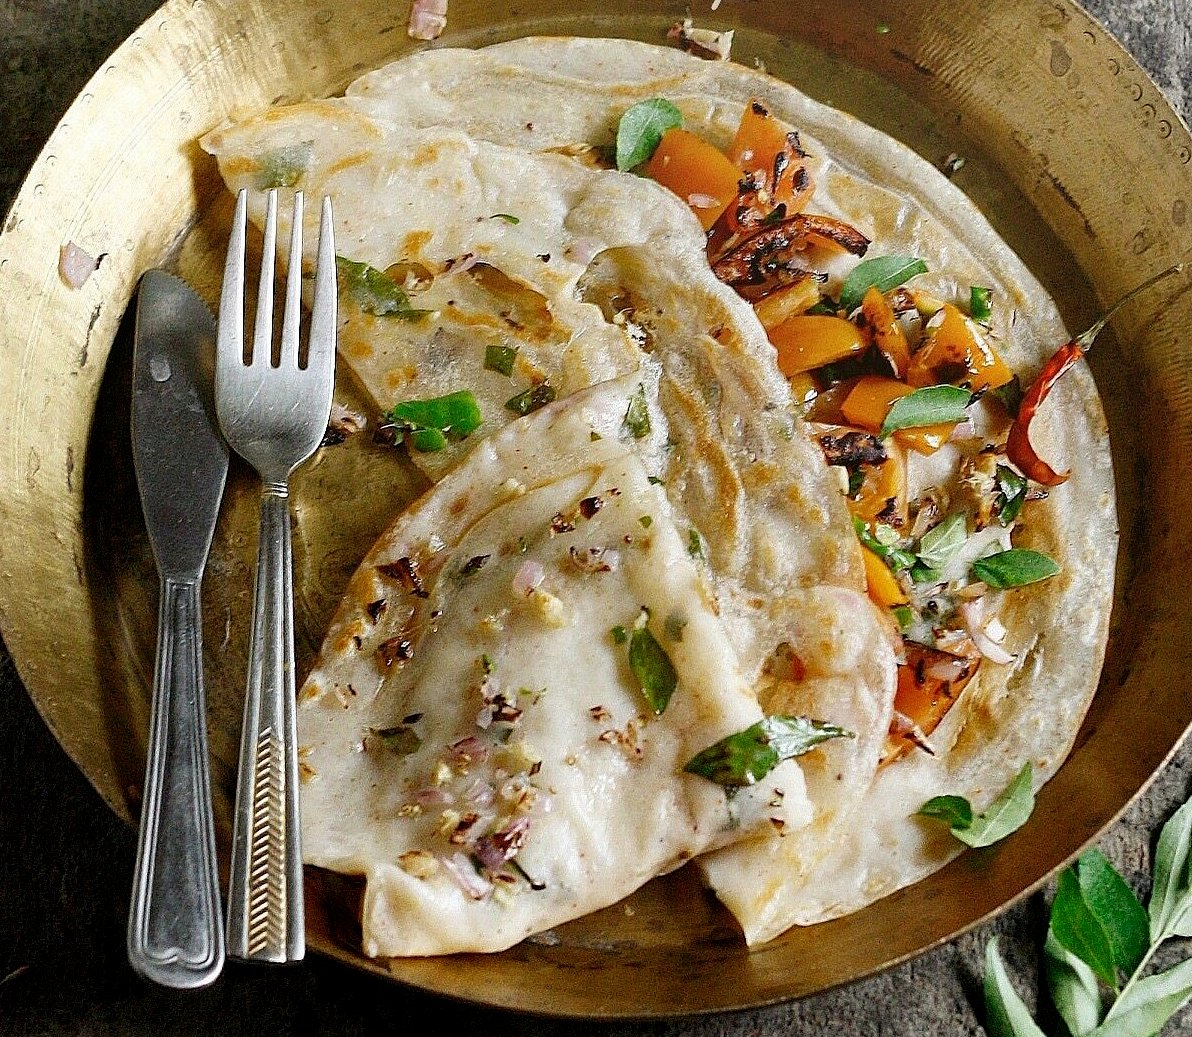 Masala dosa recipe with vegetable filling vegetable crepe by masala dosa recipe with vegetable filling vegetable crepe forumfinder Image collections